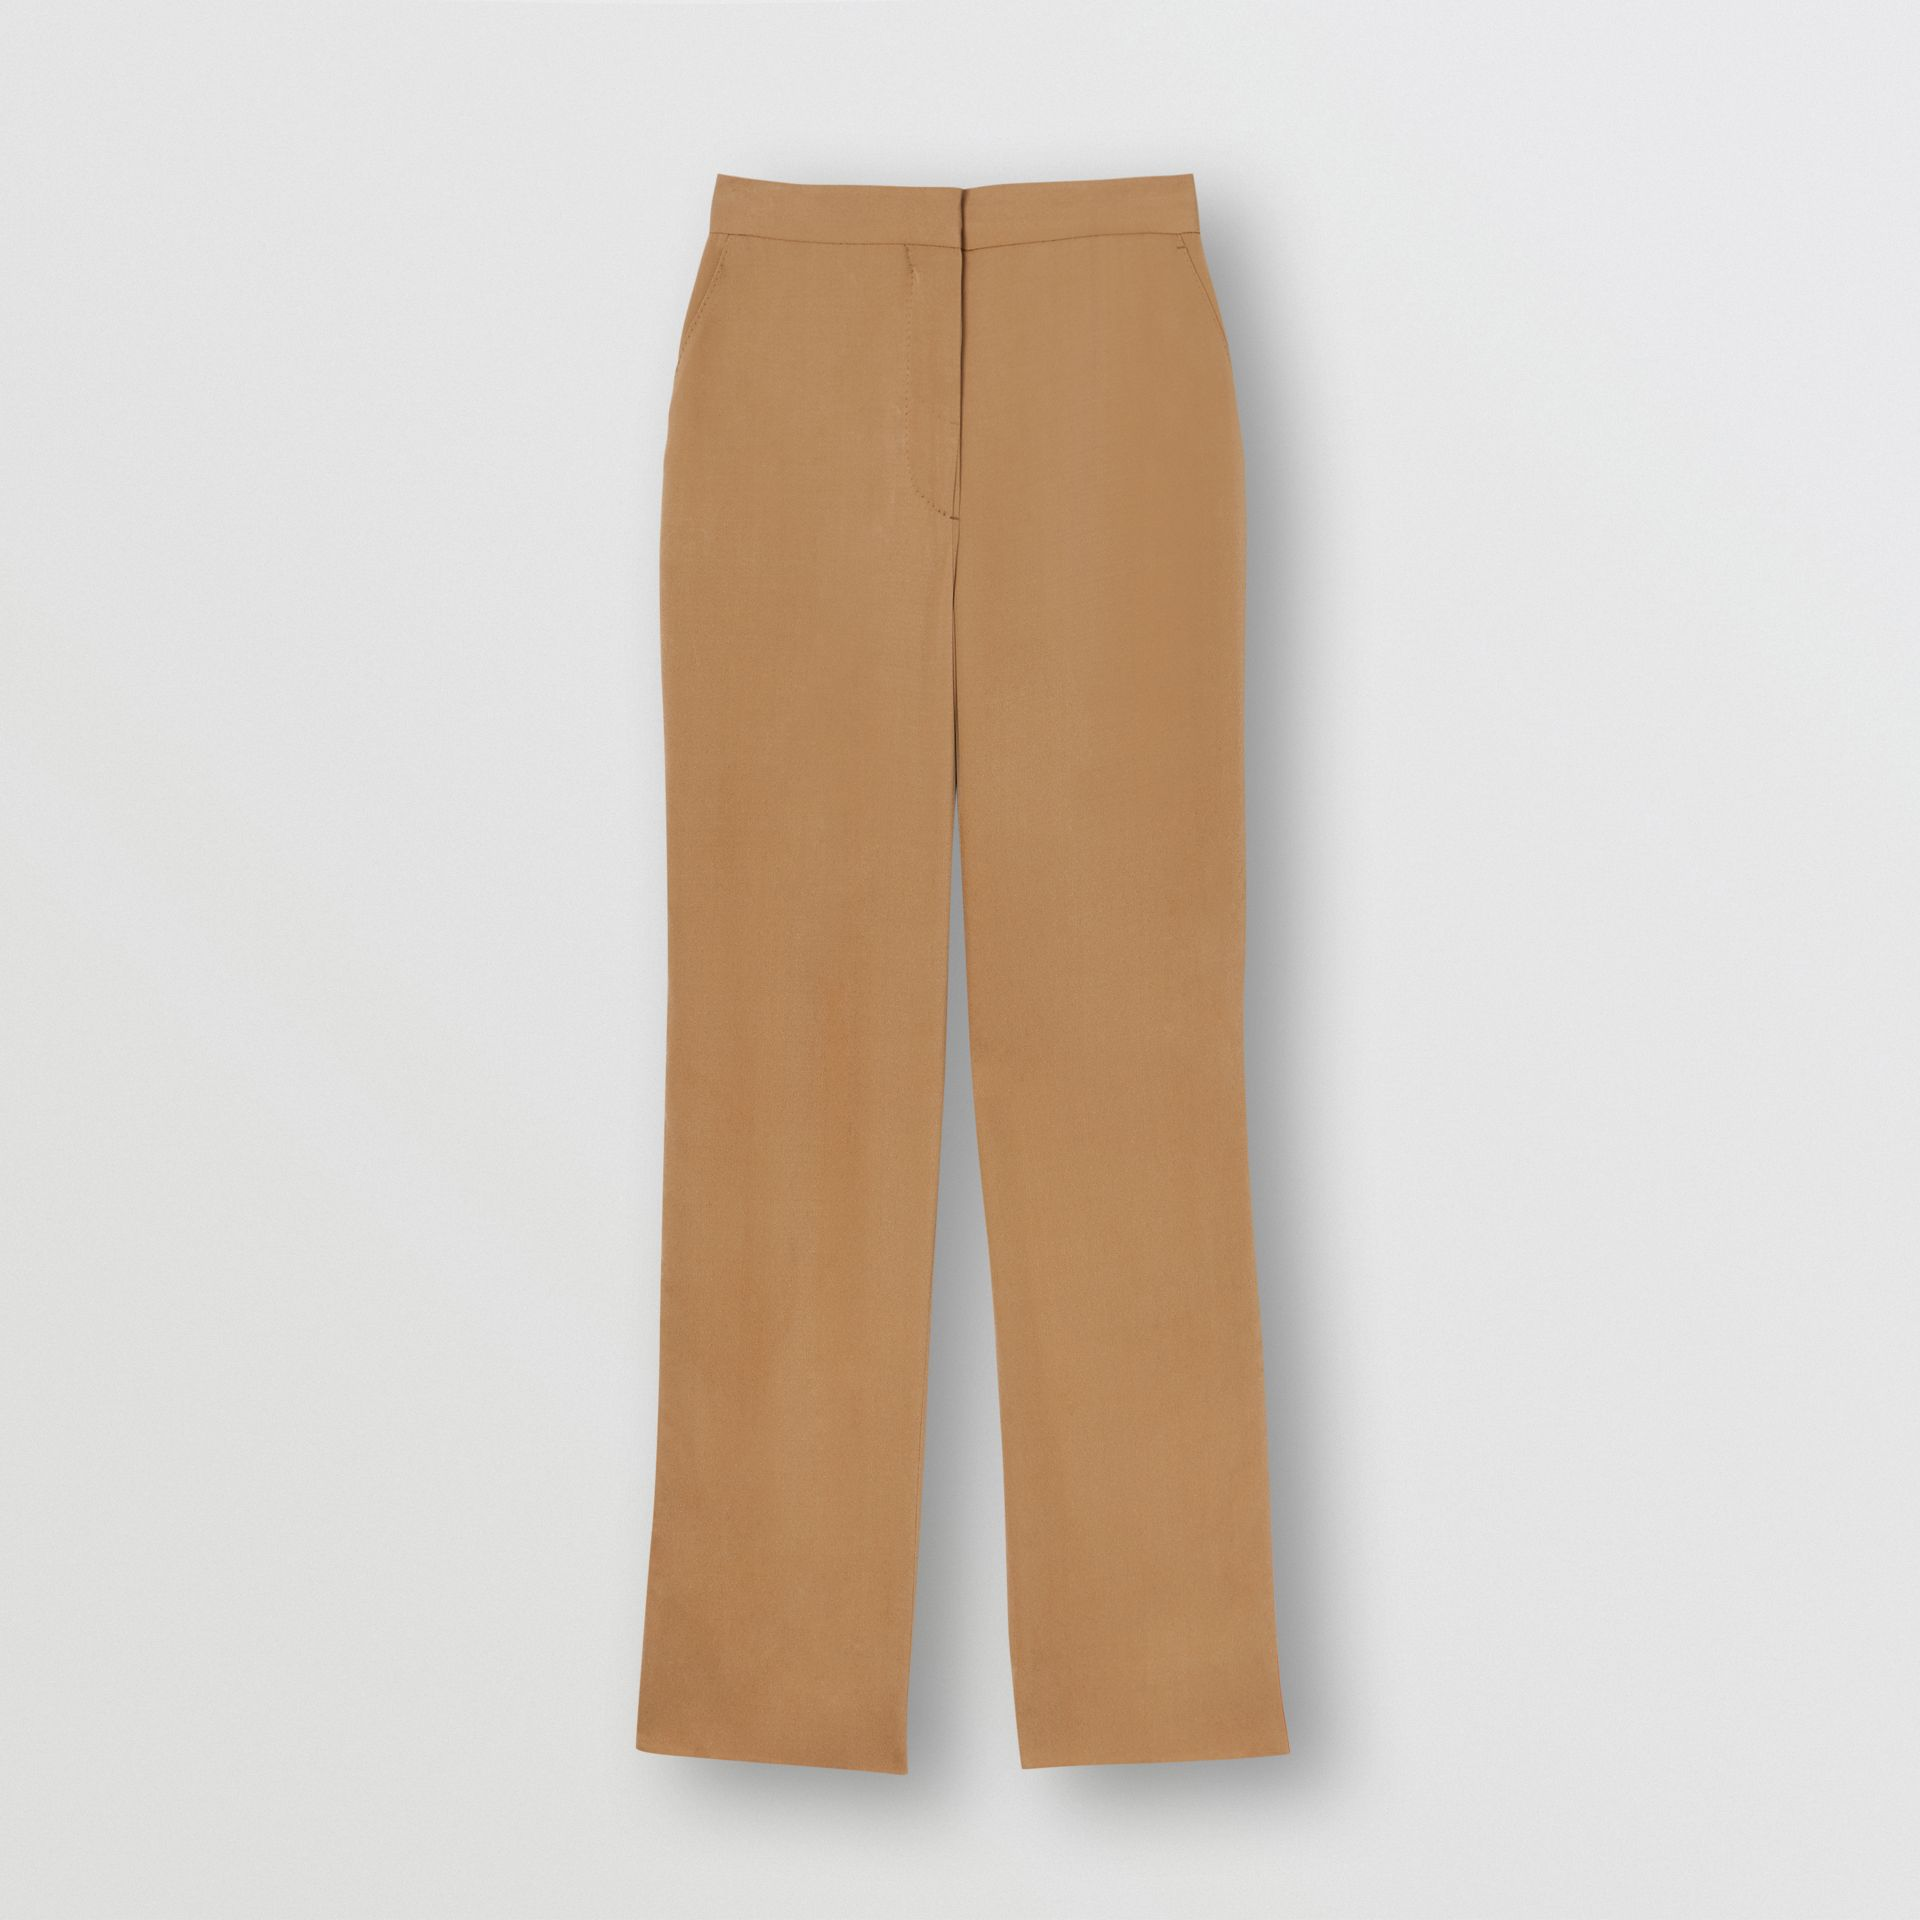 Satin Stripe Crepe Tailored Trousers in Driftwood - Women | Burberry United States - gallery image 3